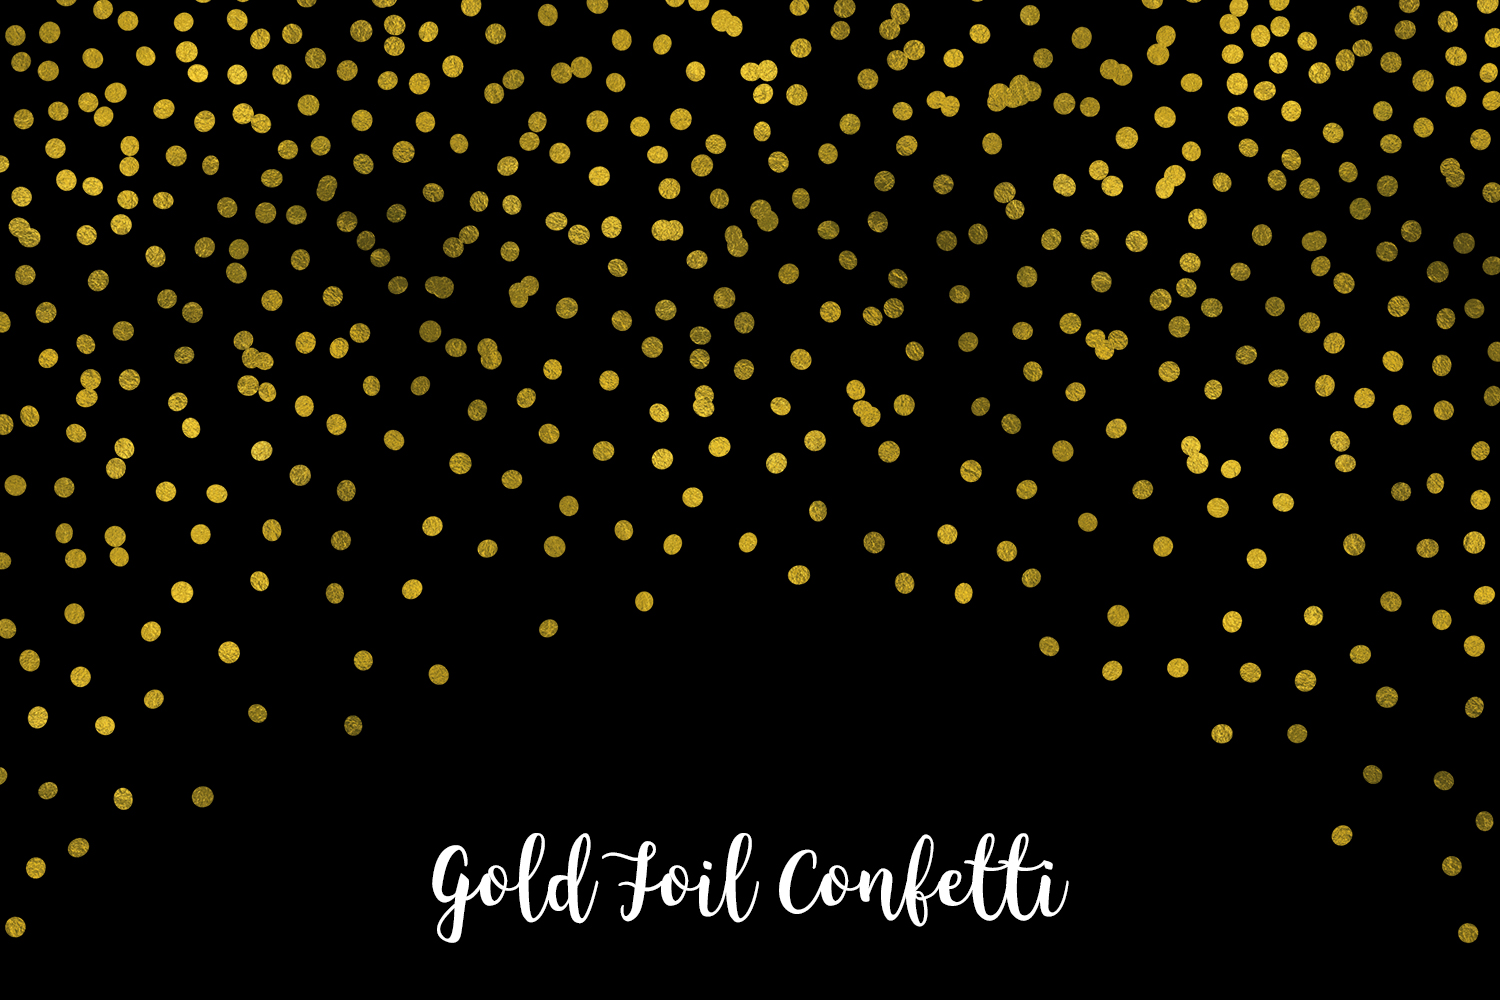 Gold Foil Confetti, Transparent PNG example image 7